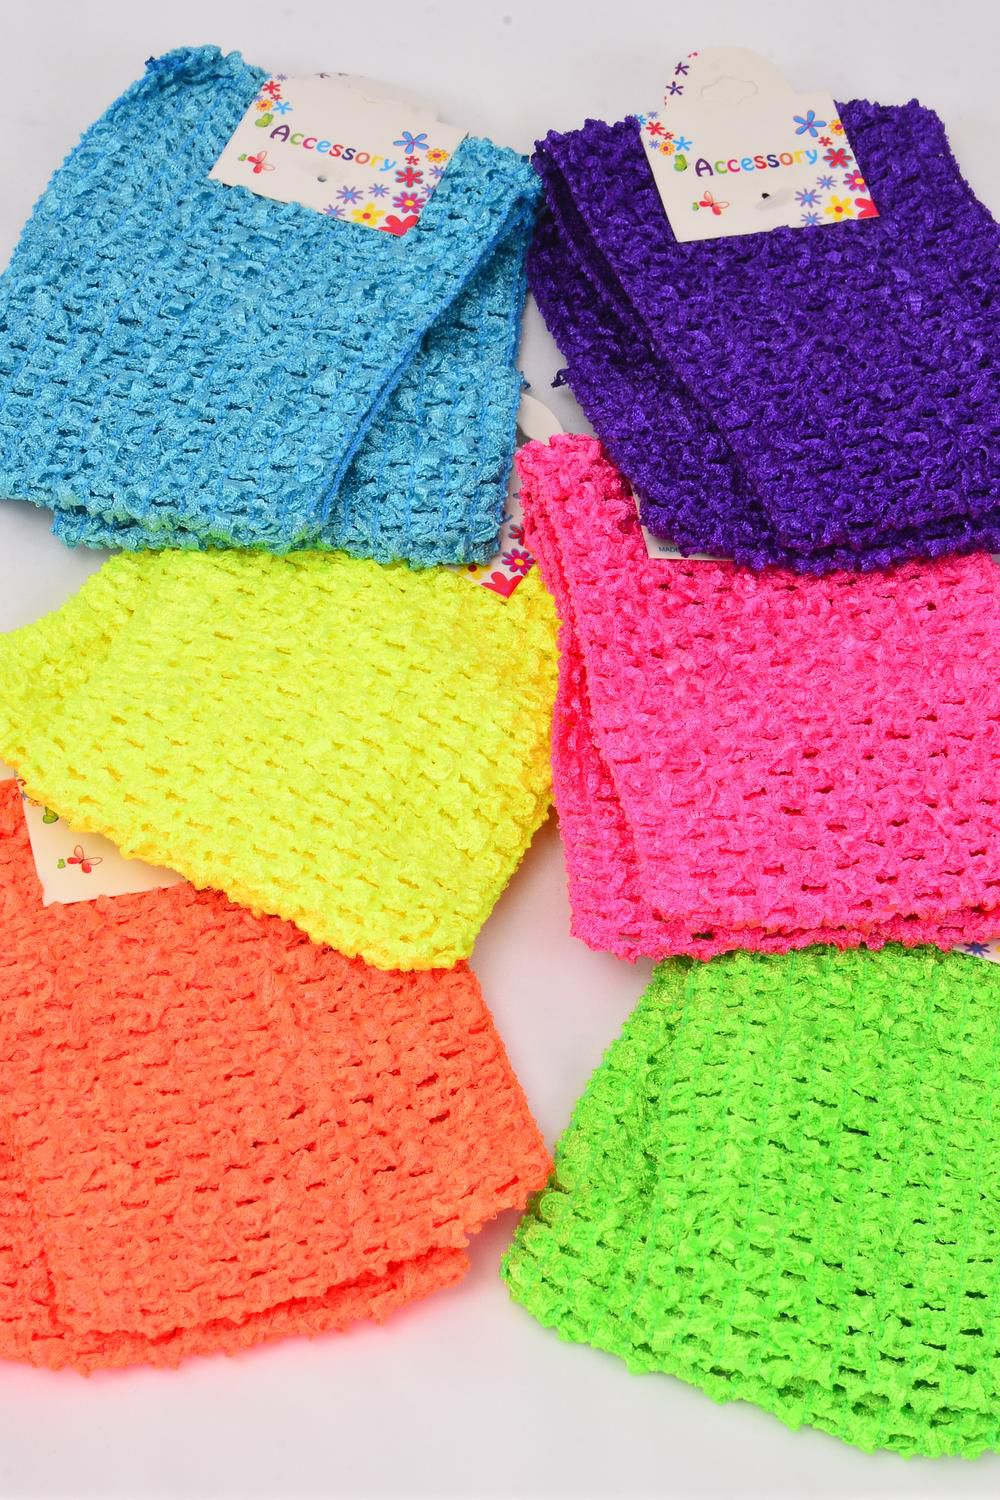 "Ballerina Headband Turban 4 Inch Wide 24 pcs Caribbean Mix/DZ **Caribbean Mix** Stretch,Size-4"" Wide,2 of each Color Asst,Hang Tag & OPP Bag & UPC Code"